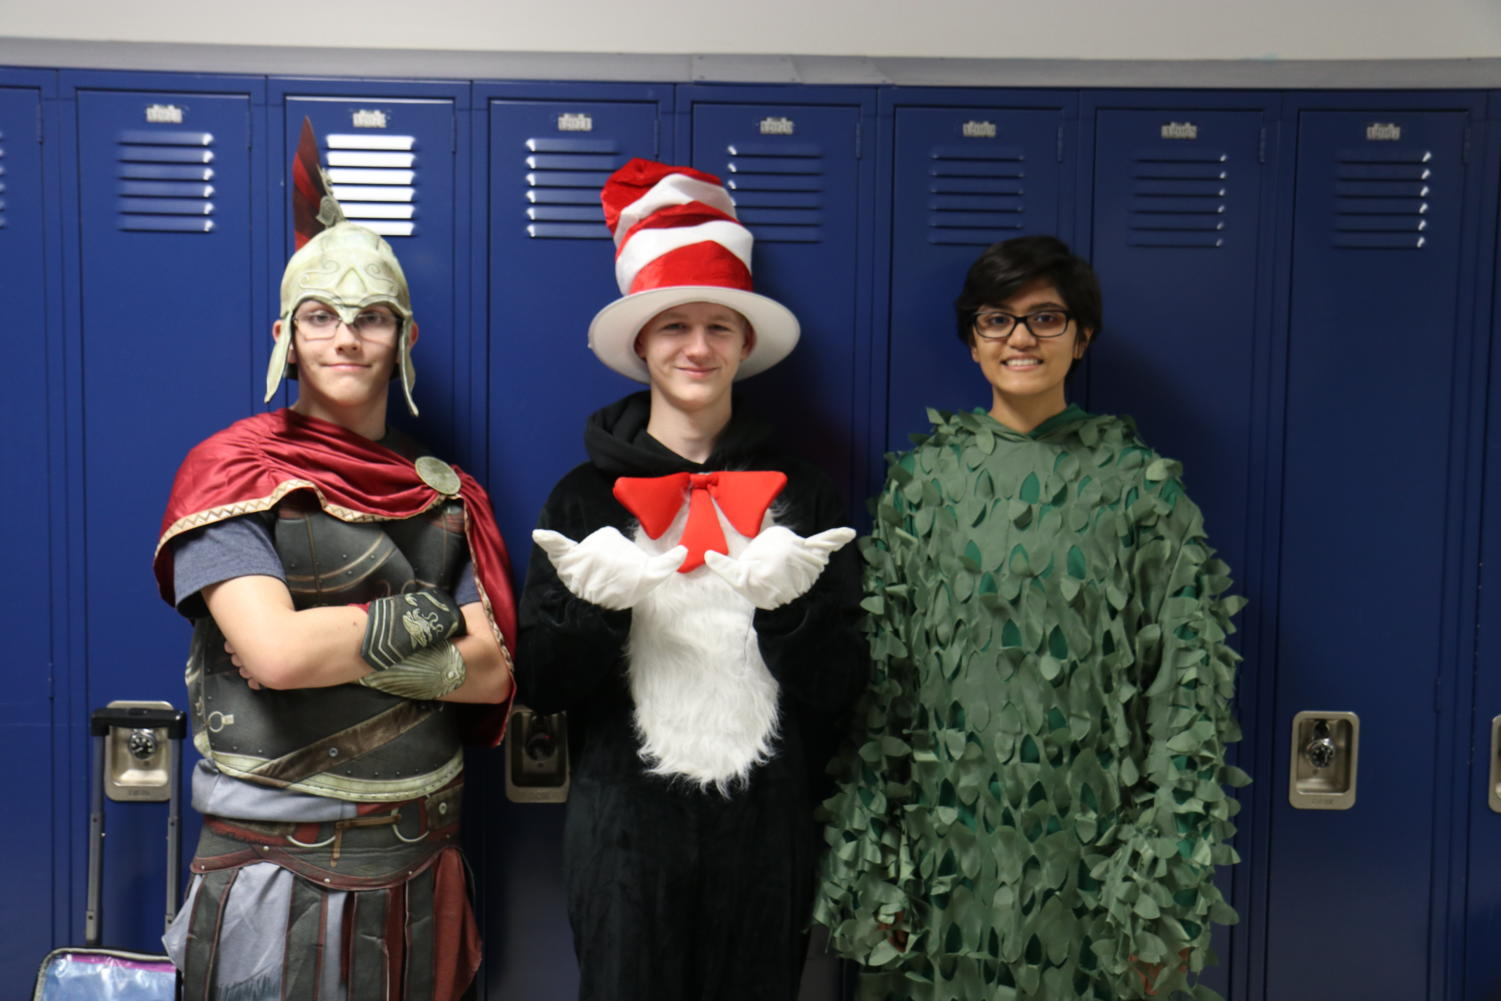 Sophomore+Colbie+Collins+is+dressed+as+a+greek+warrior+with+Mazyn+Green%2C+sophomore%2C+as+Cat+in+the+Hat%2C+and+Sam+Faruq+as+a+bush.